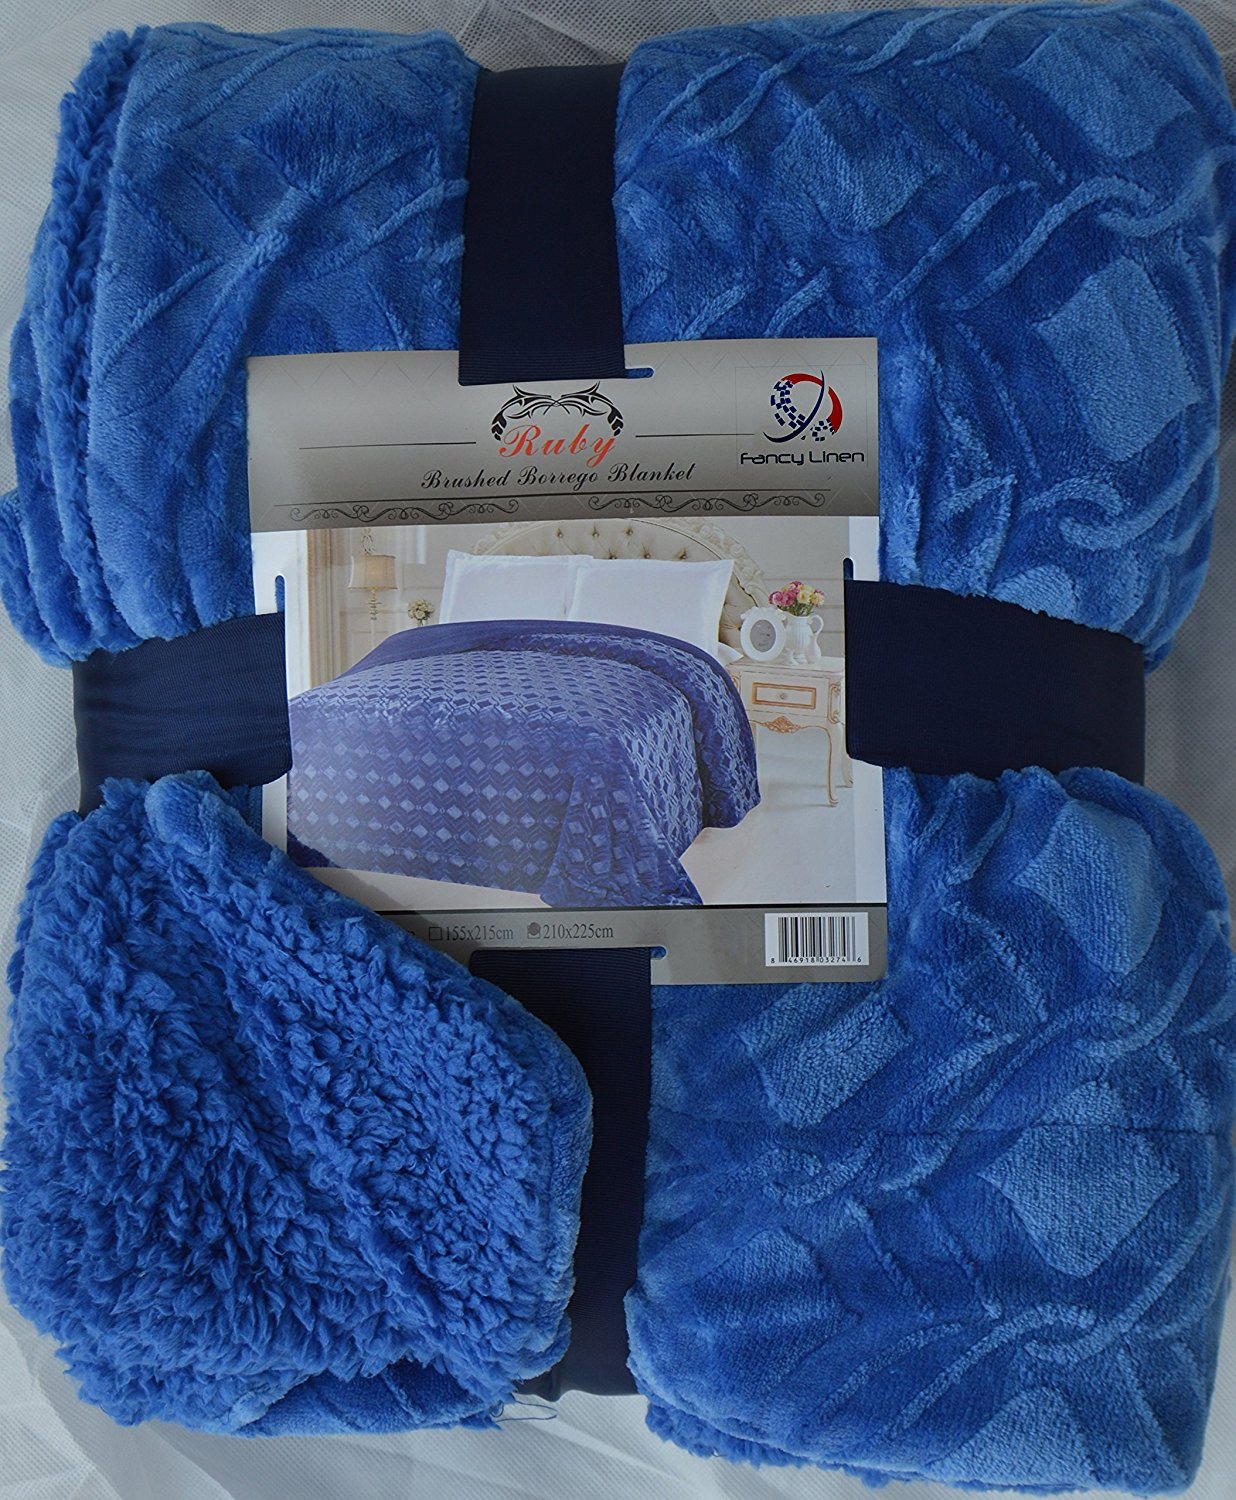 Fancy Collection Queen/king Size Embossed Blanket Sumptuously Soft Plush Sollid Blue with Sherpa Revirsable Winter Blankets Bedspread Super Soft New (Queen/King, Blue)